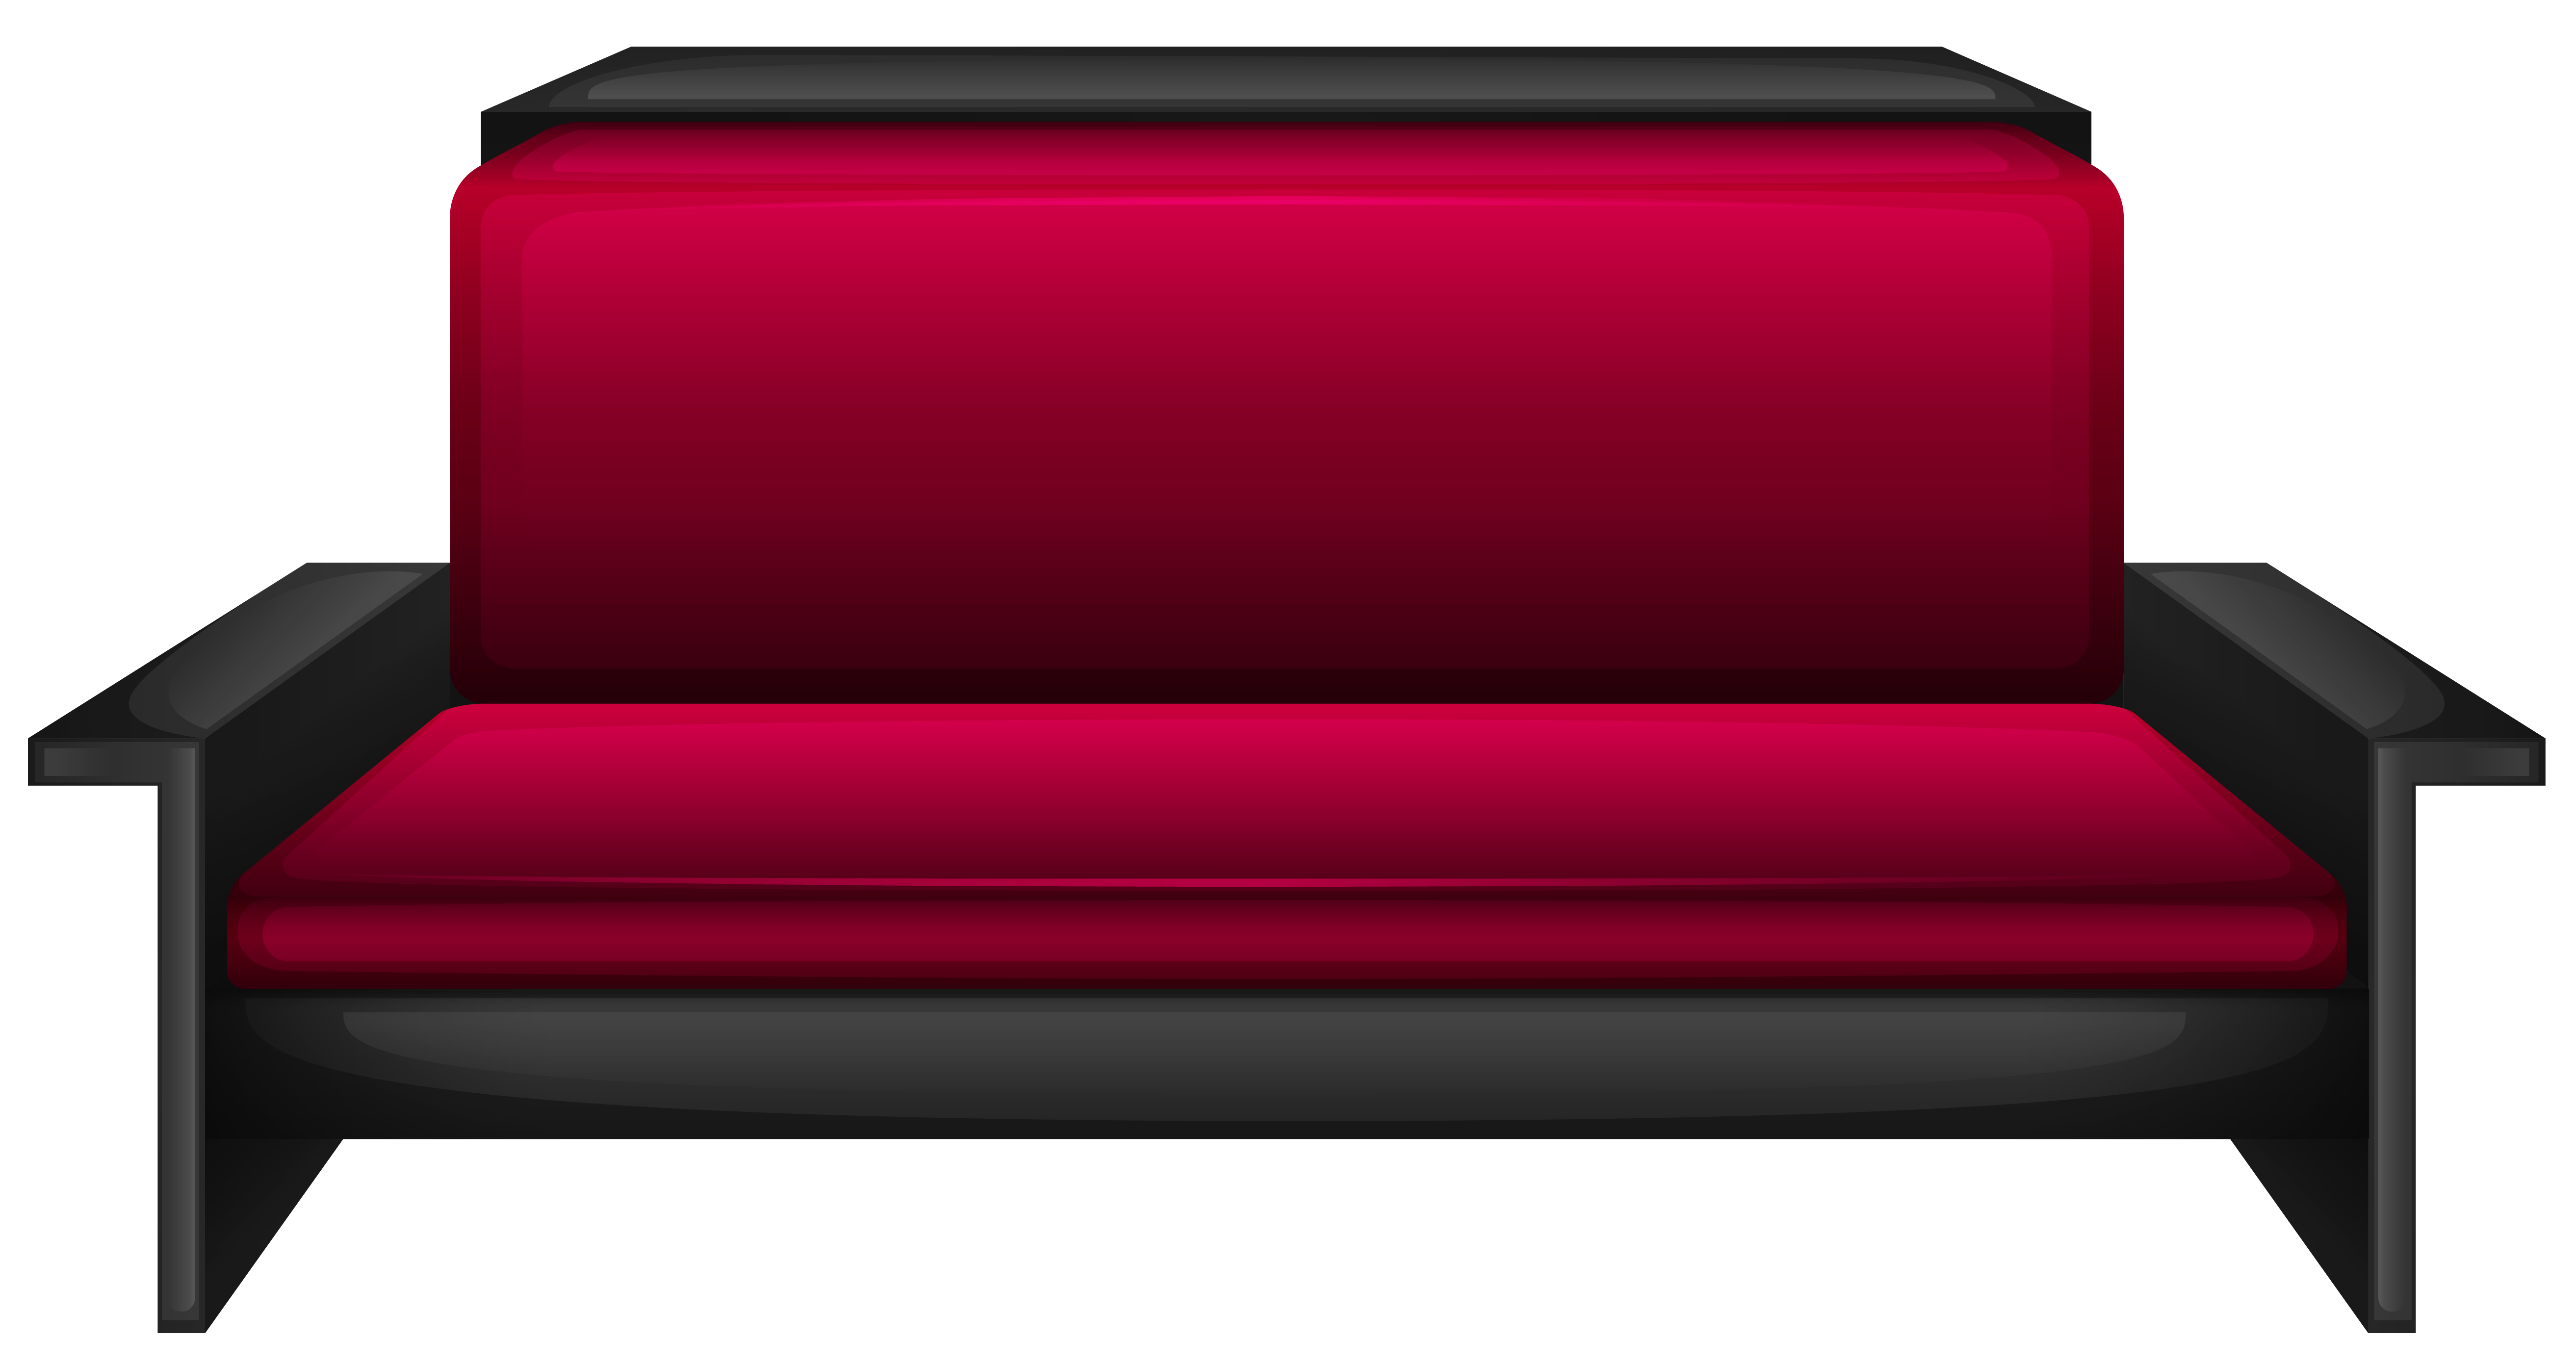 Modern red sofa png. Furniture clipart couch